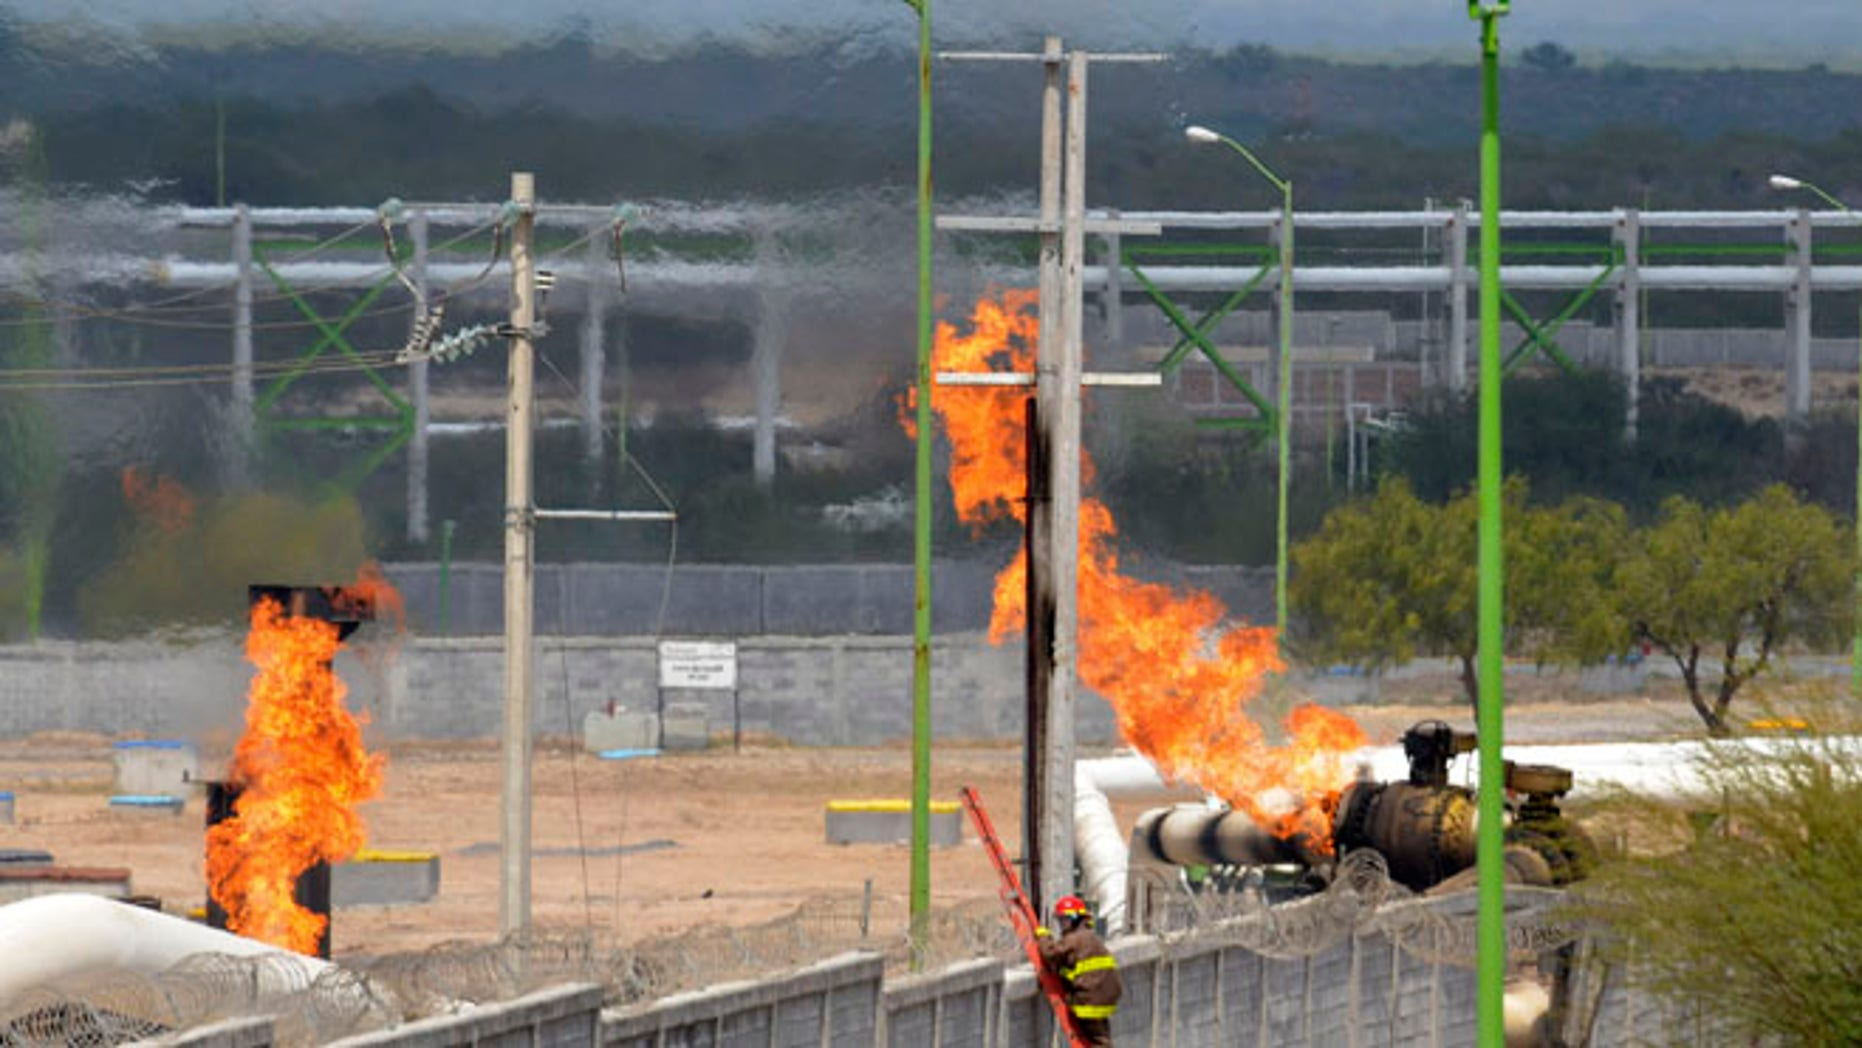 Sept. 18, 2012: Firefighter climb a ladder as they try to control a fire after an explosion at a gas pipeline distribution center in Reynosa, Mexico near Mexico's border with the United States.